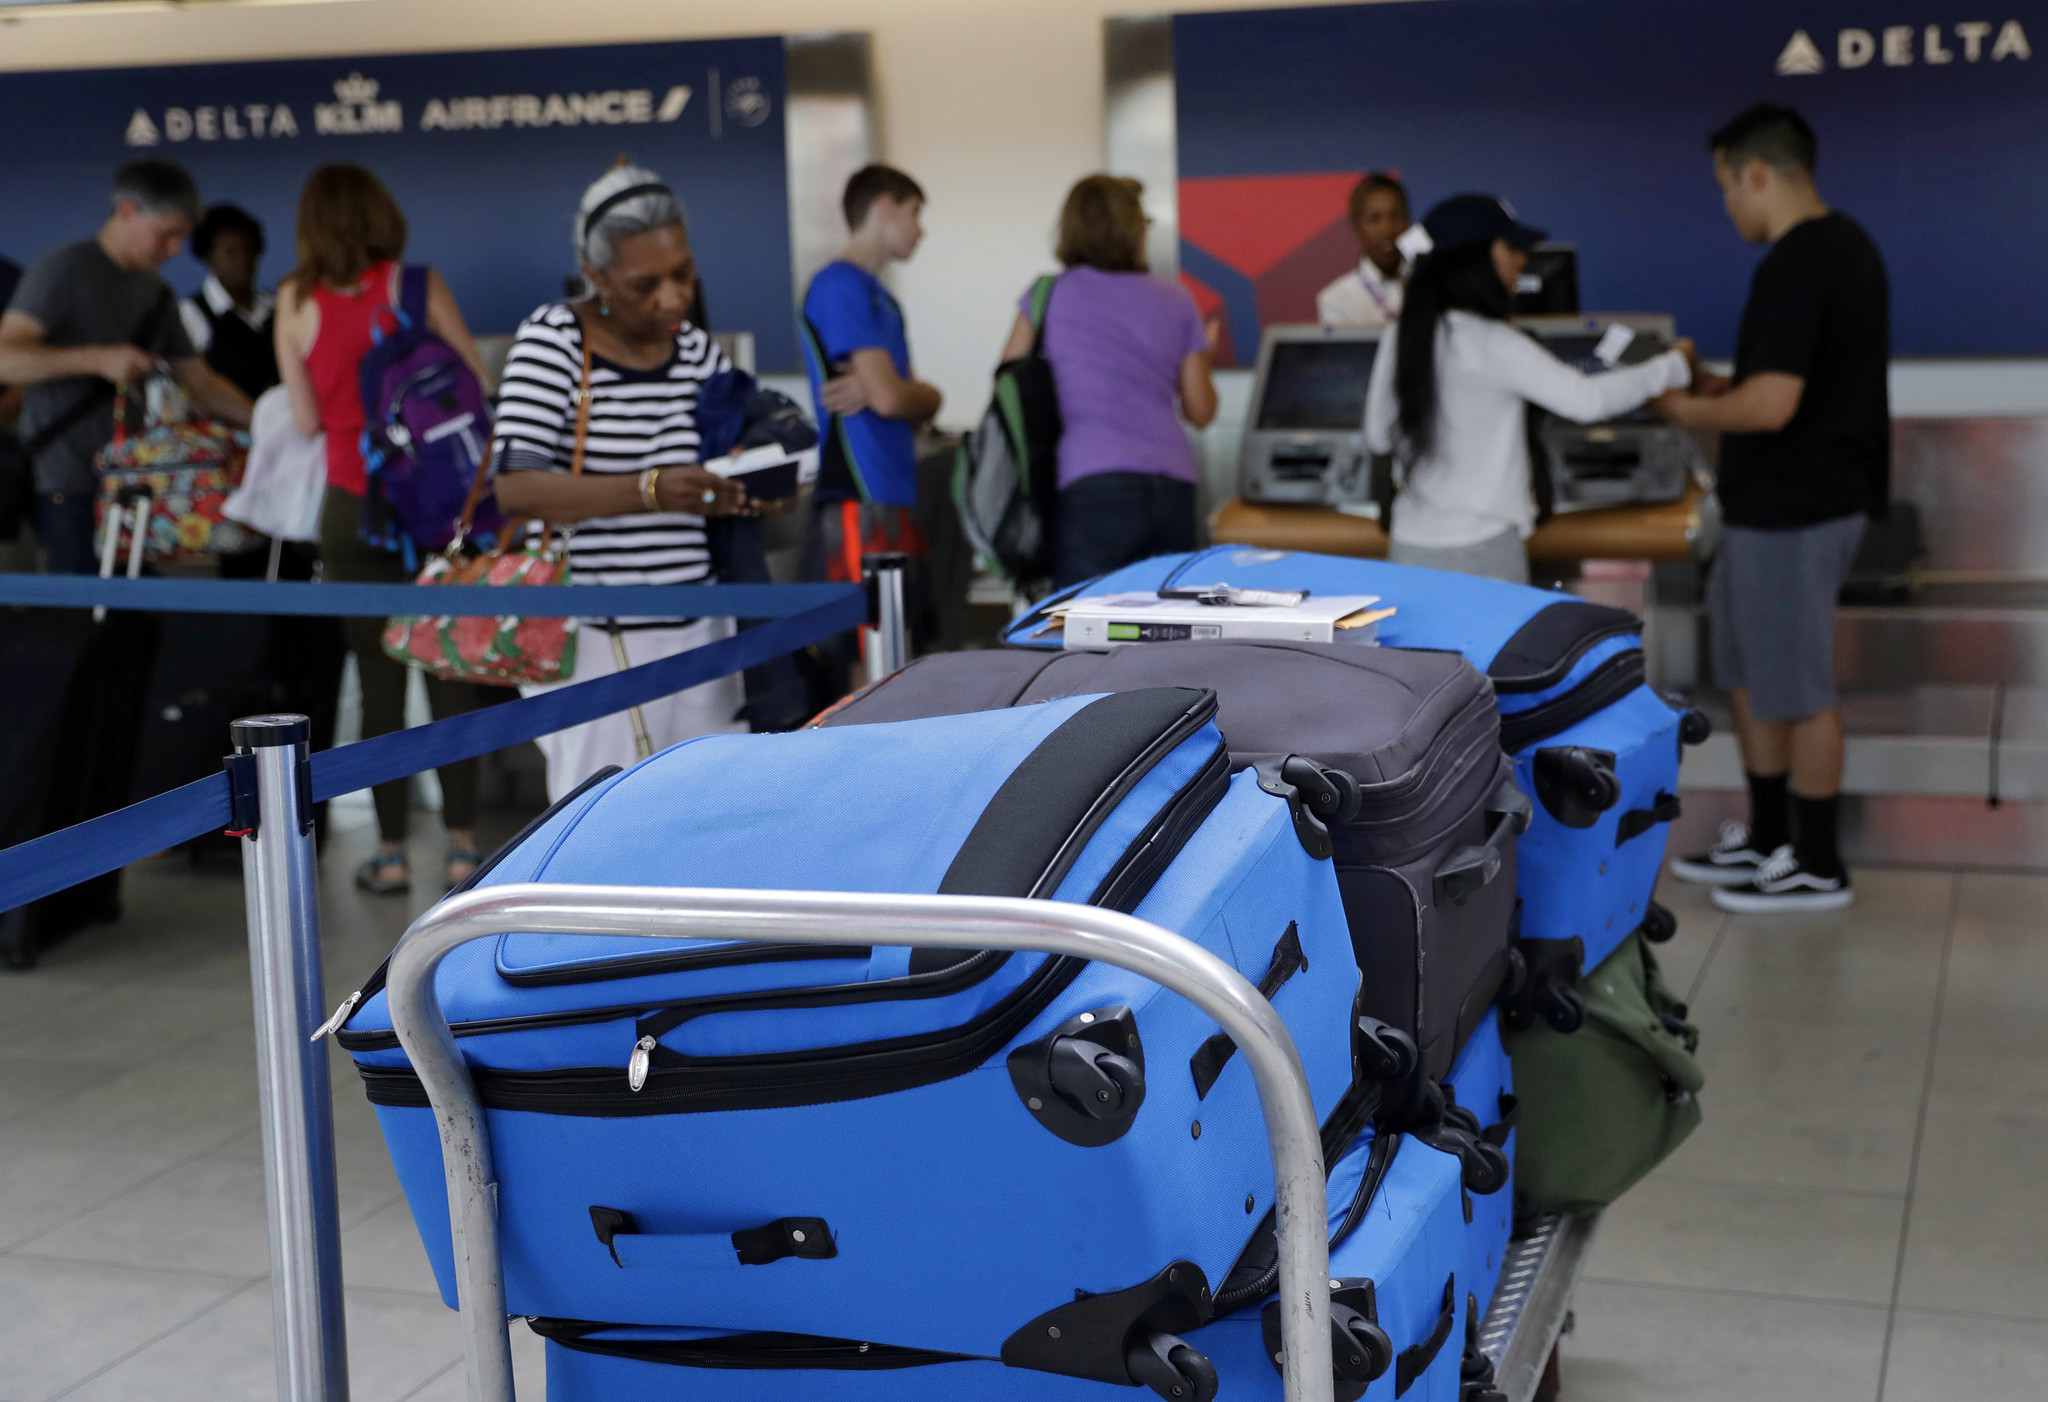 1399e038c The tech behind the quest to end lost airline luggage - Chicago Tribune